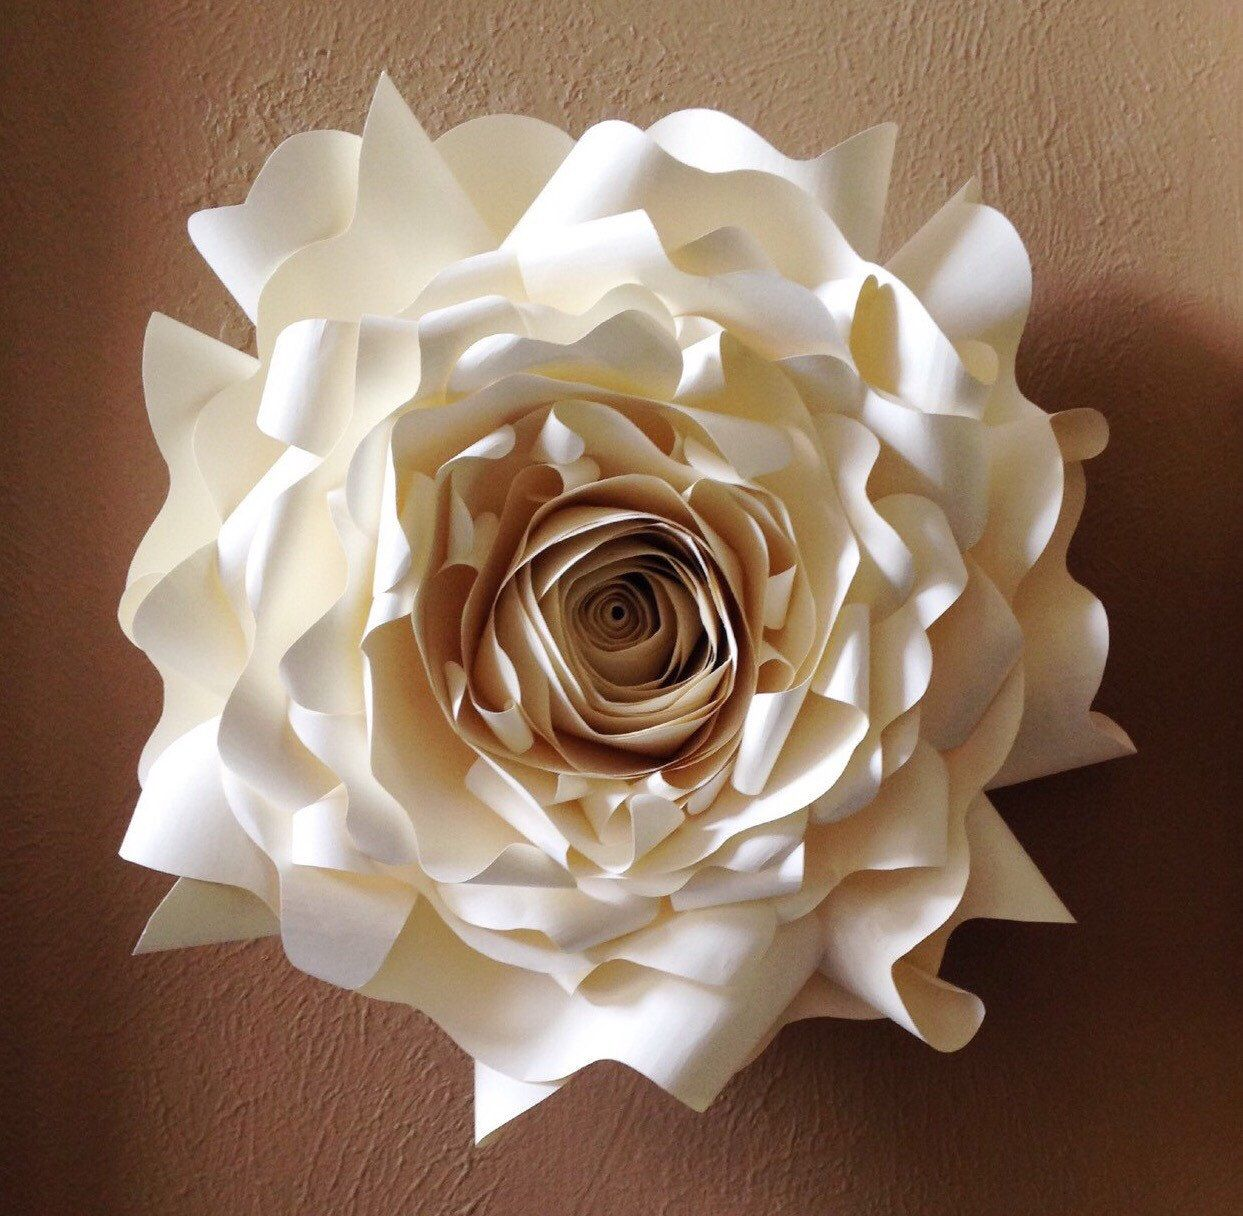 Giant Paper Wall Flower Wall Decor Wedding Decor Party Decor